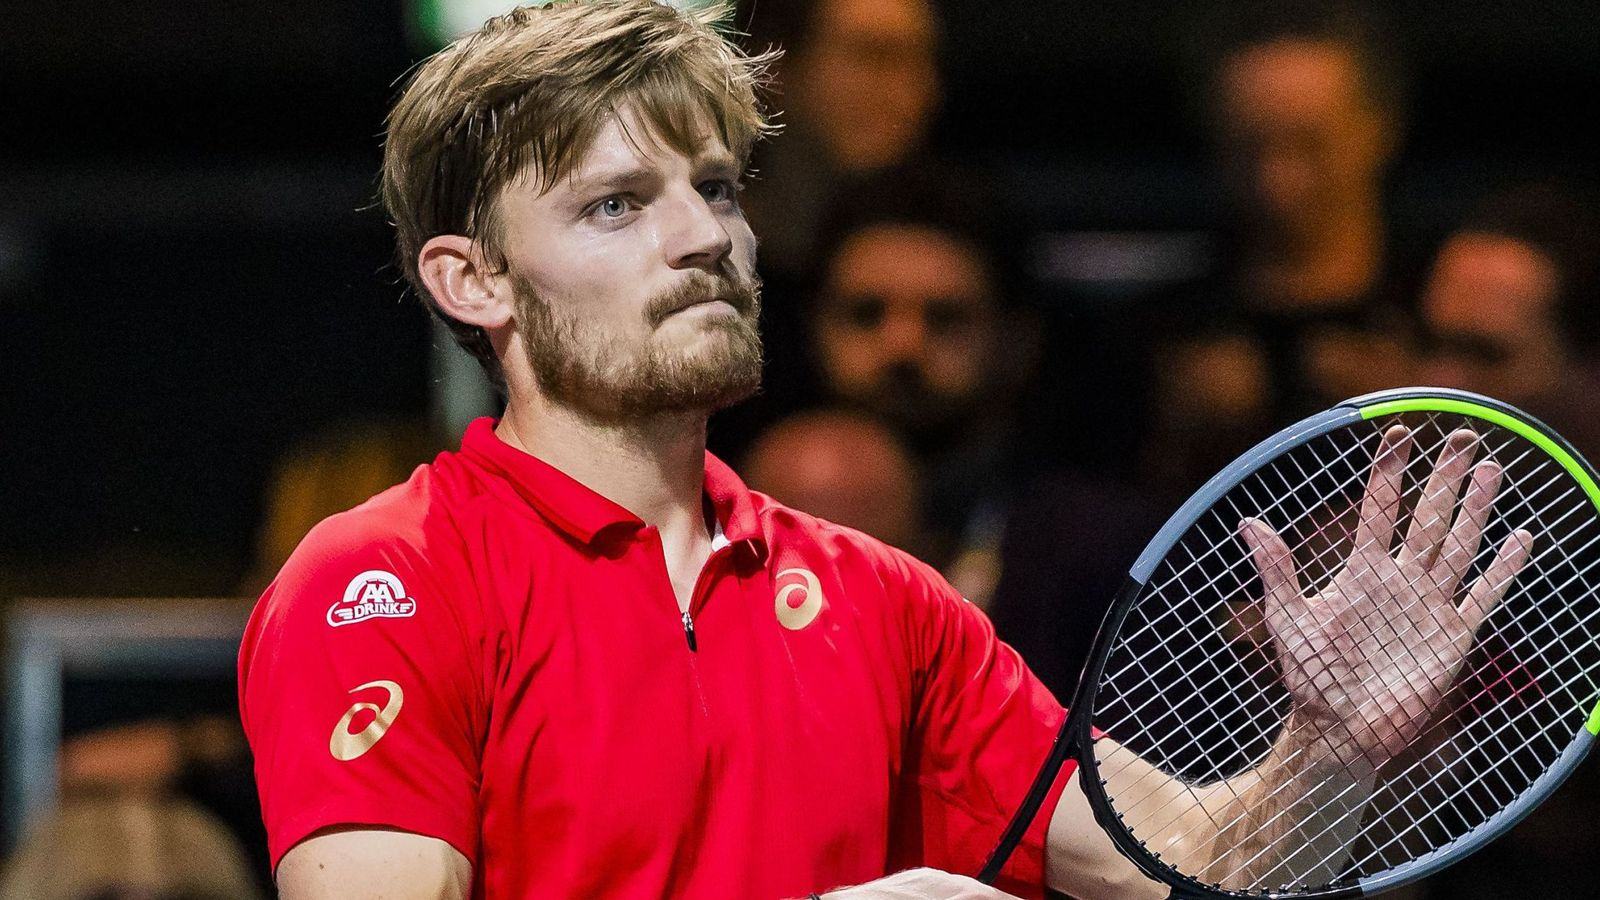 David Goffin may not travel to New York to take part in this year's US Open